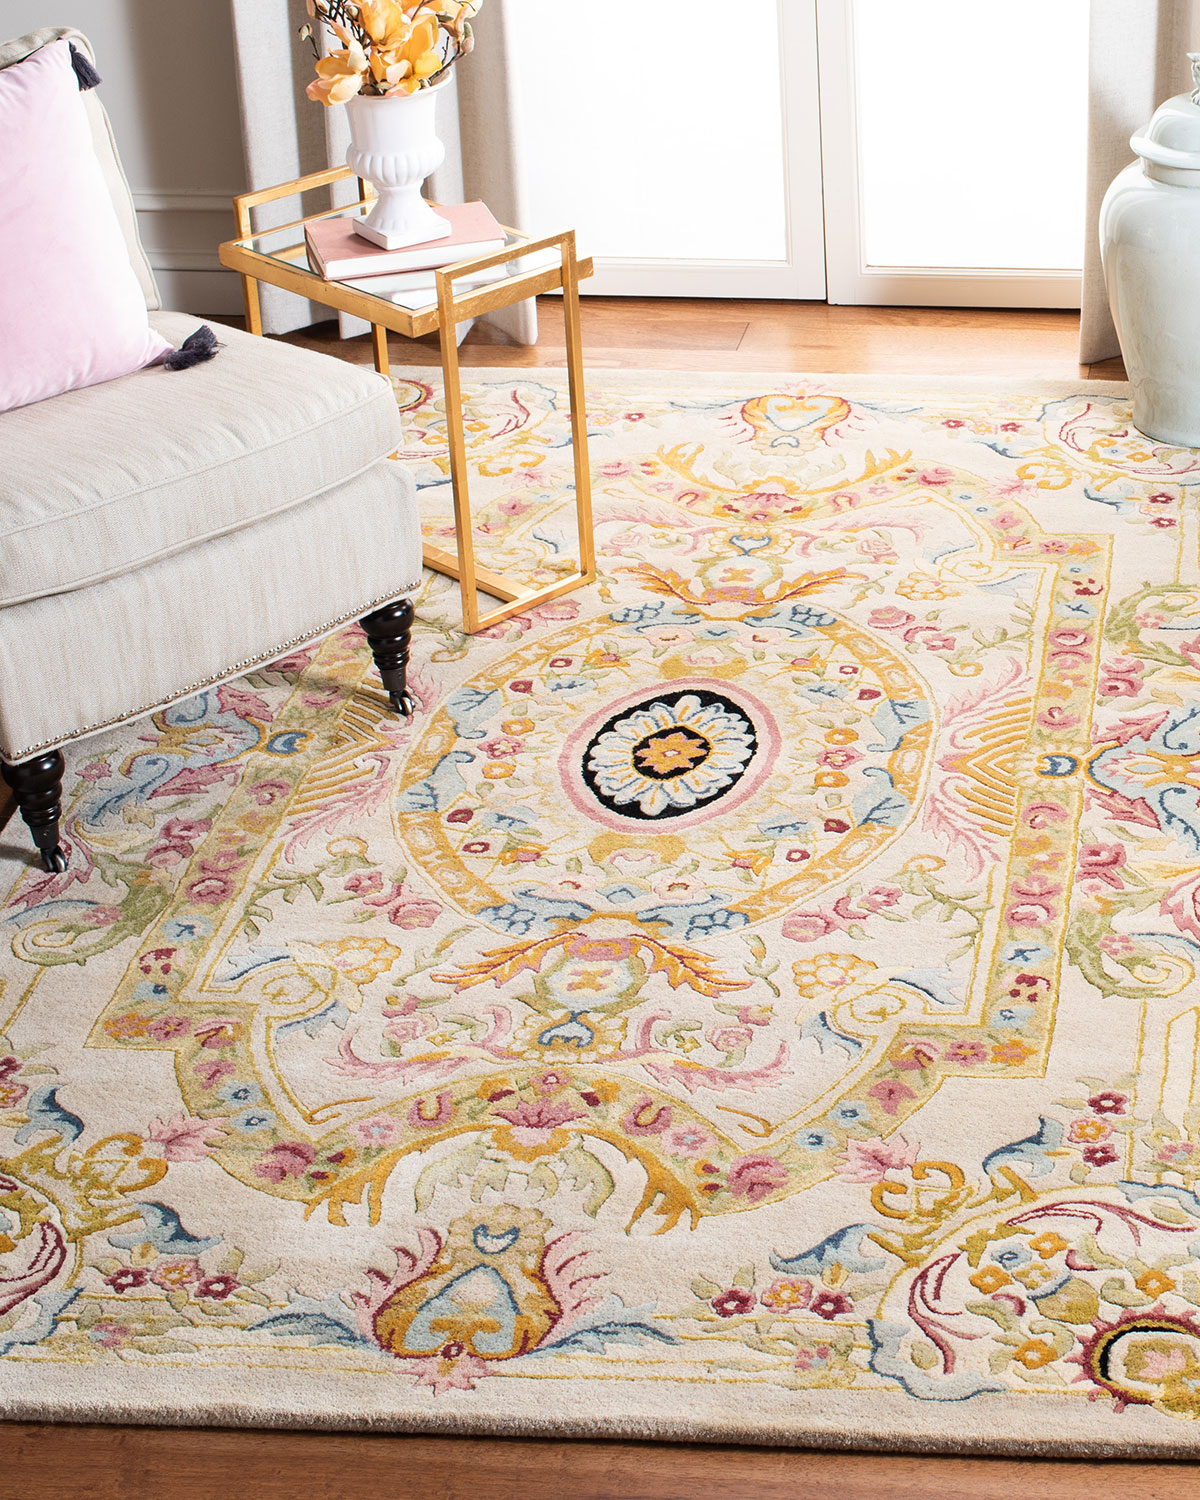 Feather Medallion Rug, 3' x 5' Product Image